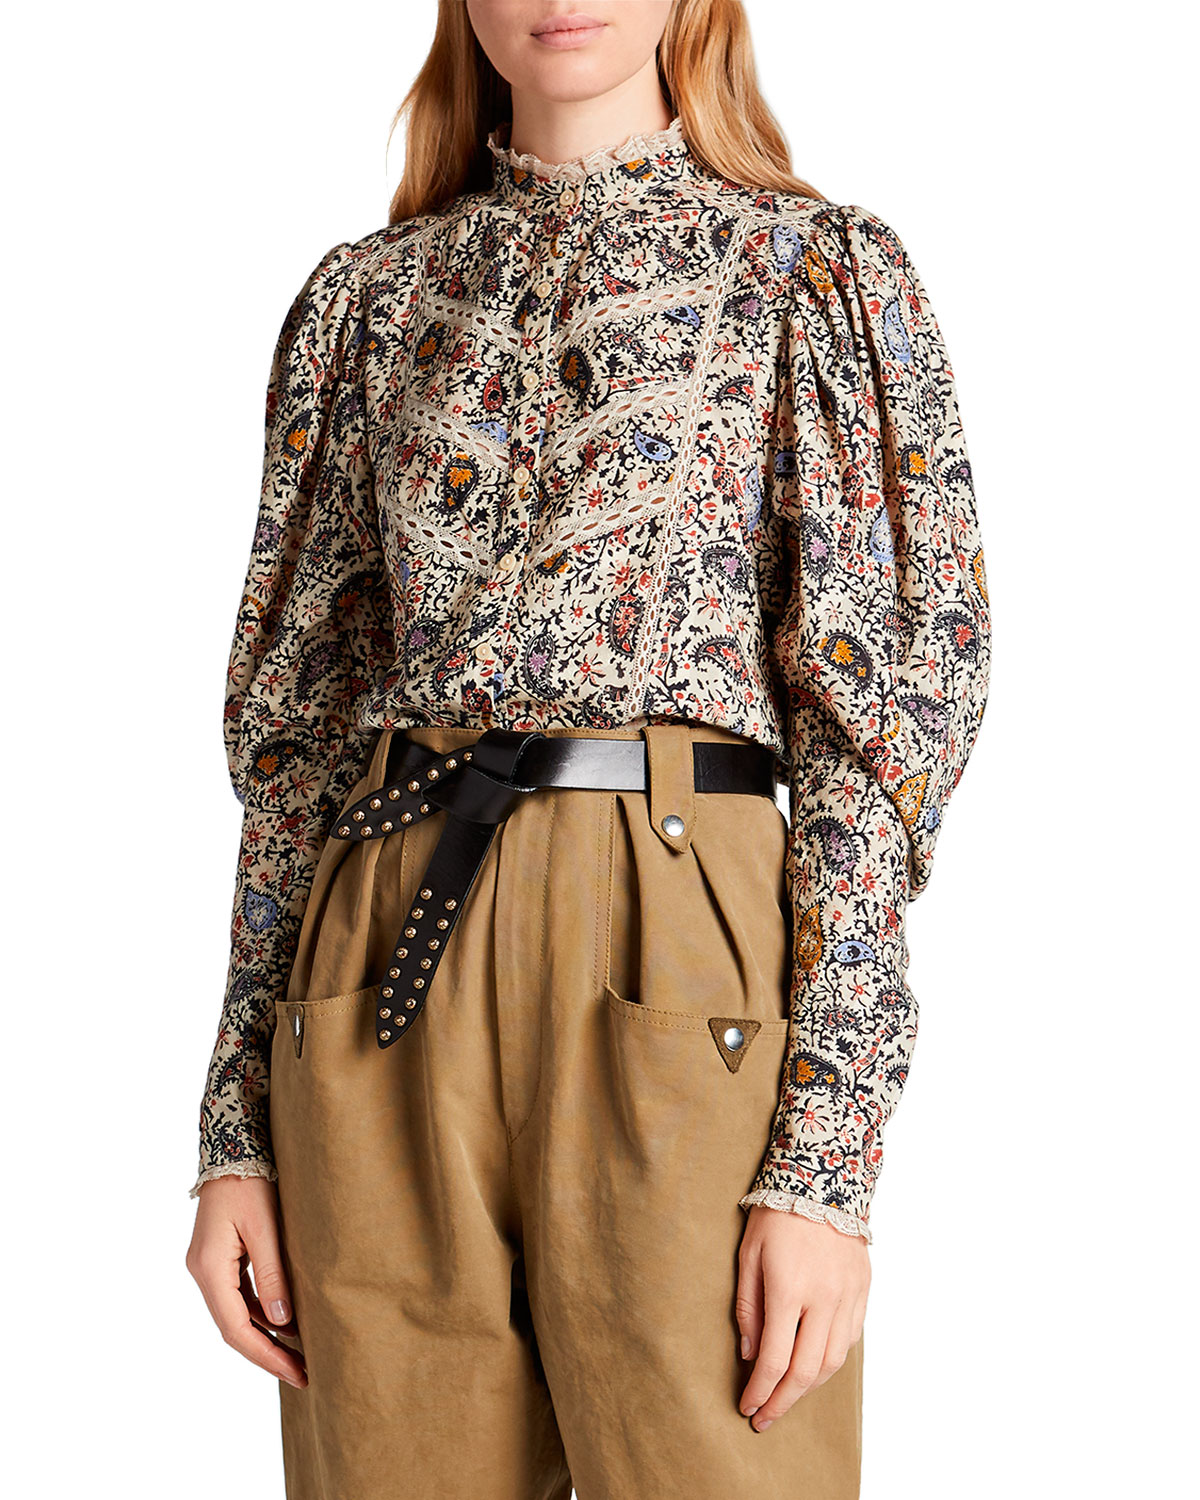 Etoile Isabel Marant Reafi Paisley High-Neck Blouse with Lace